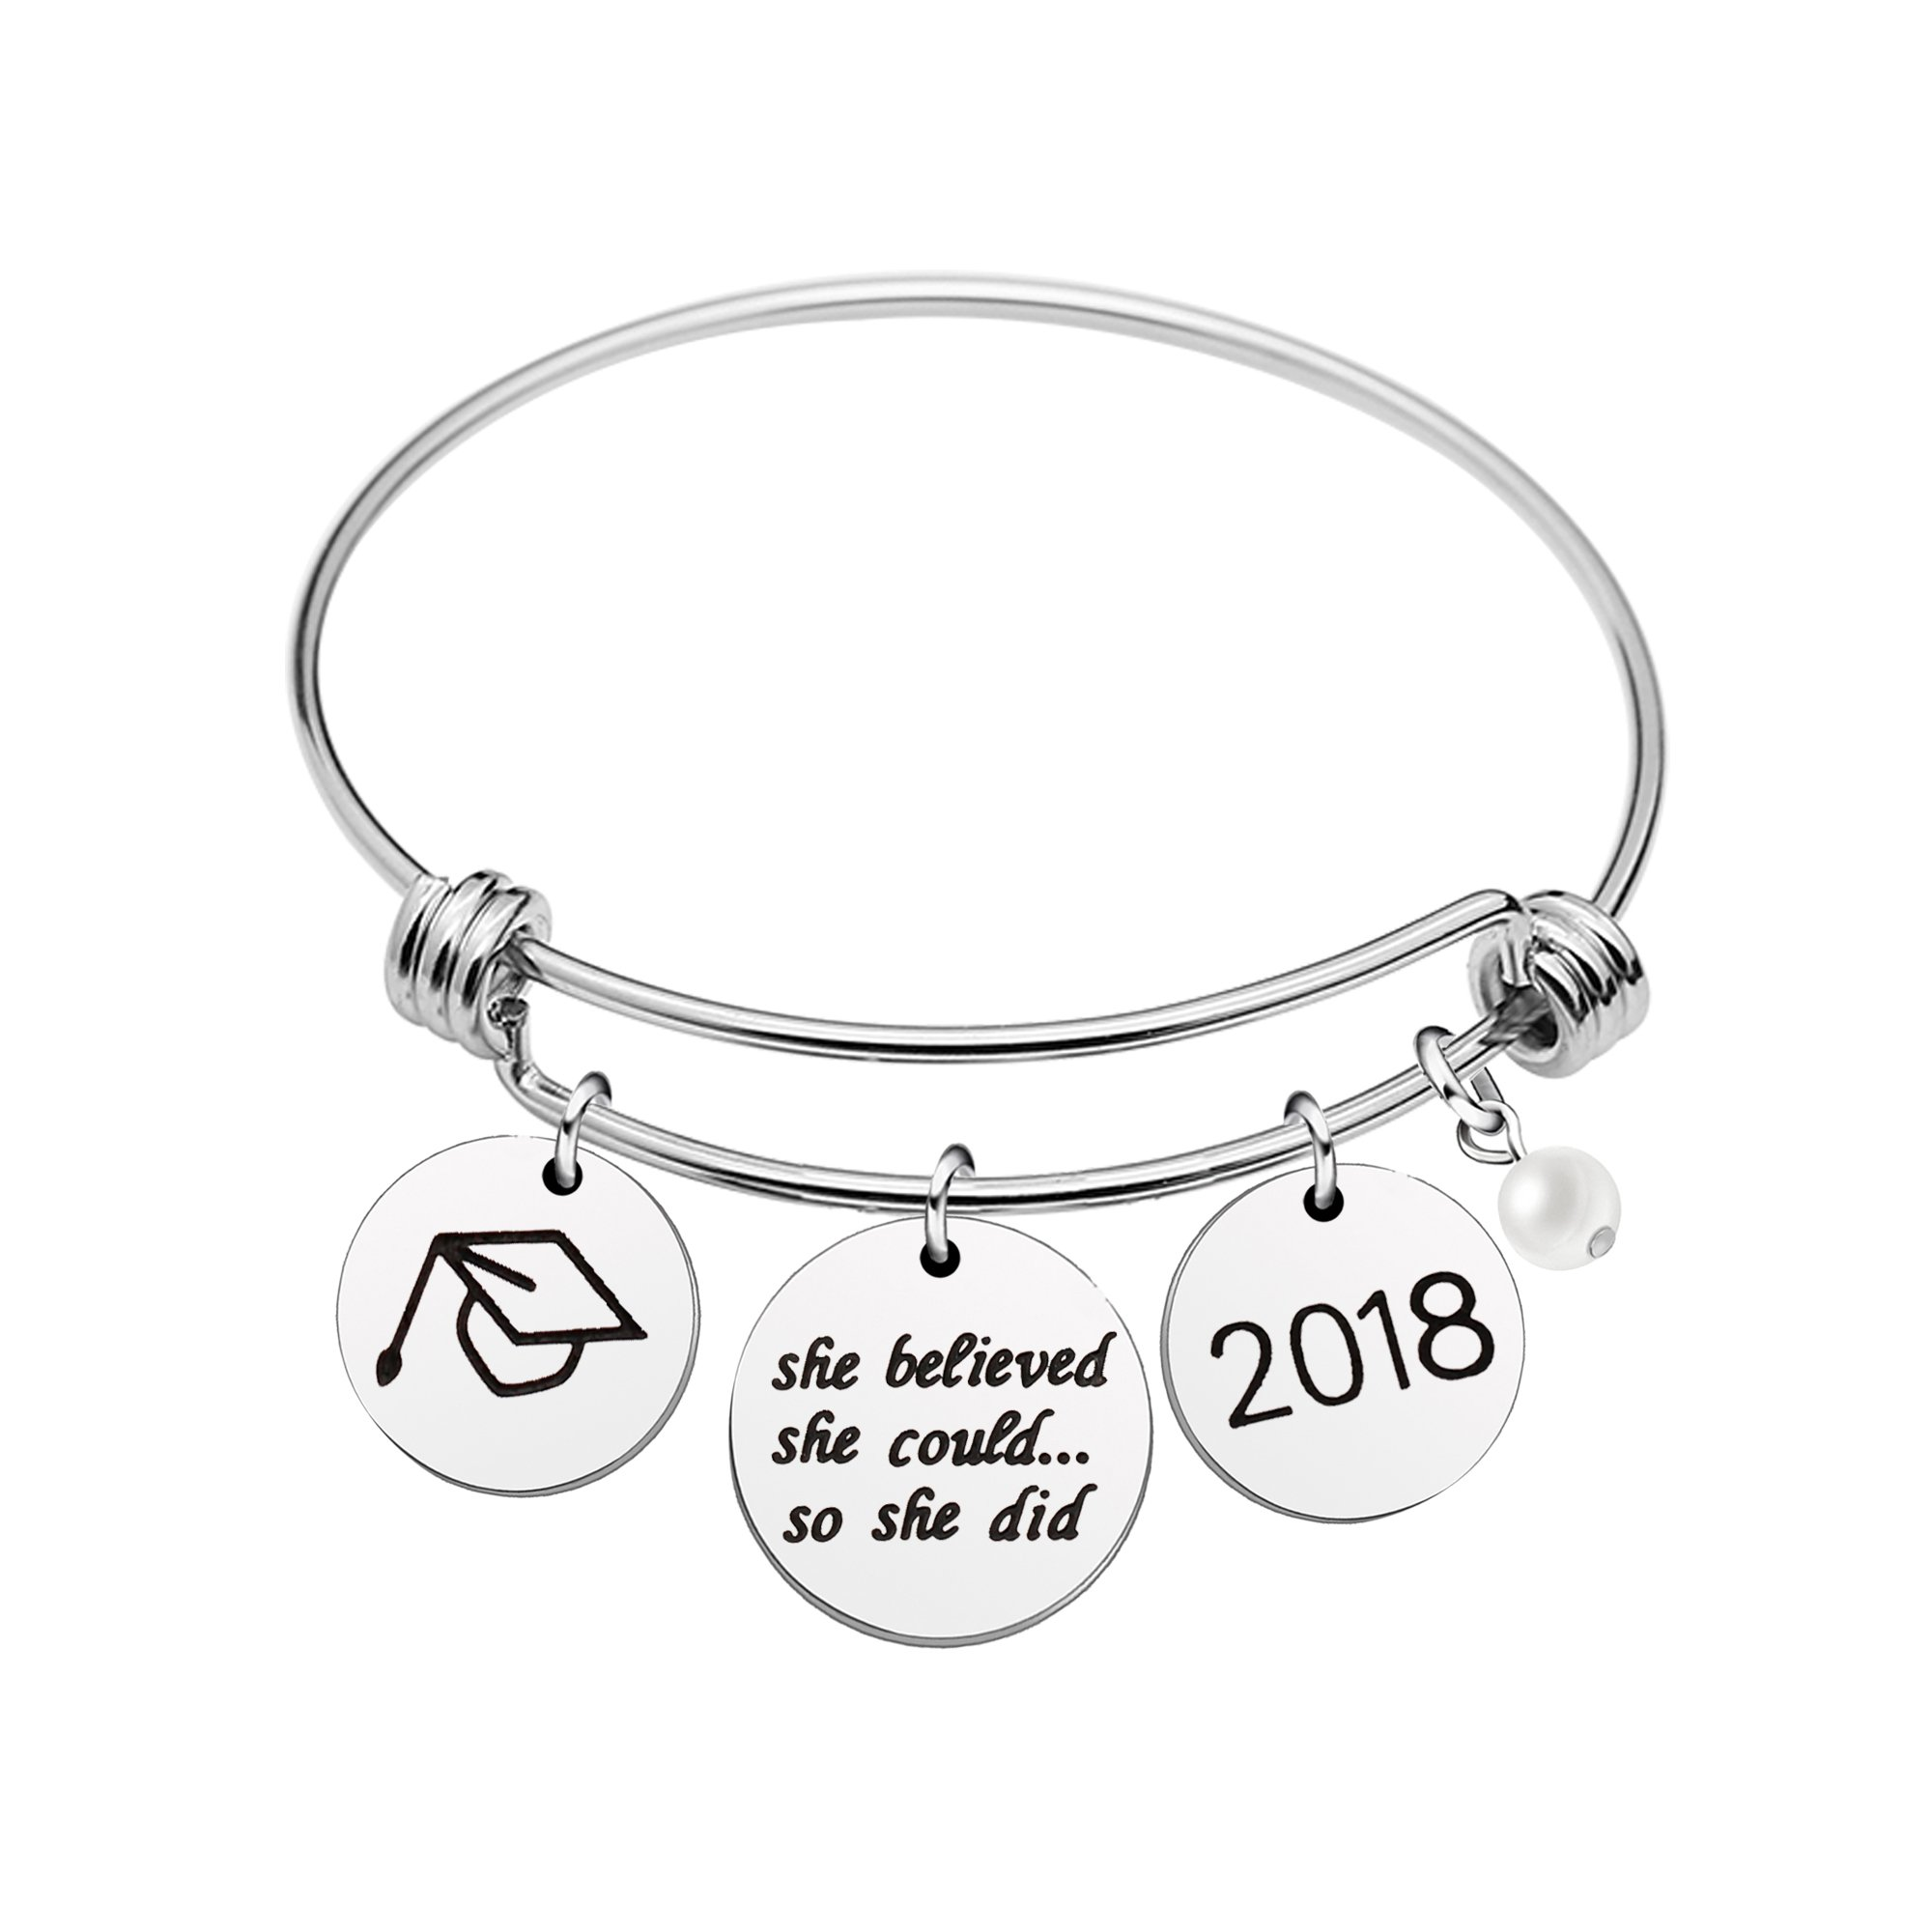 AGR8T Pearl Graduation Cup Bangle Bracelet She believed she could so she did 2018 (Style A)